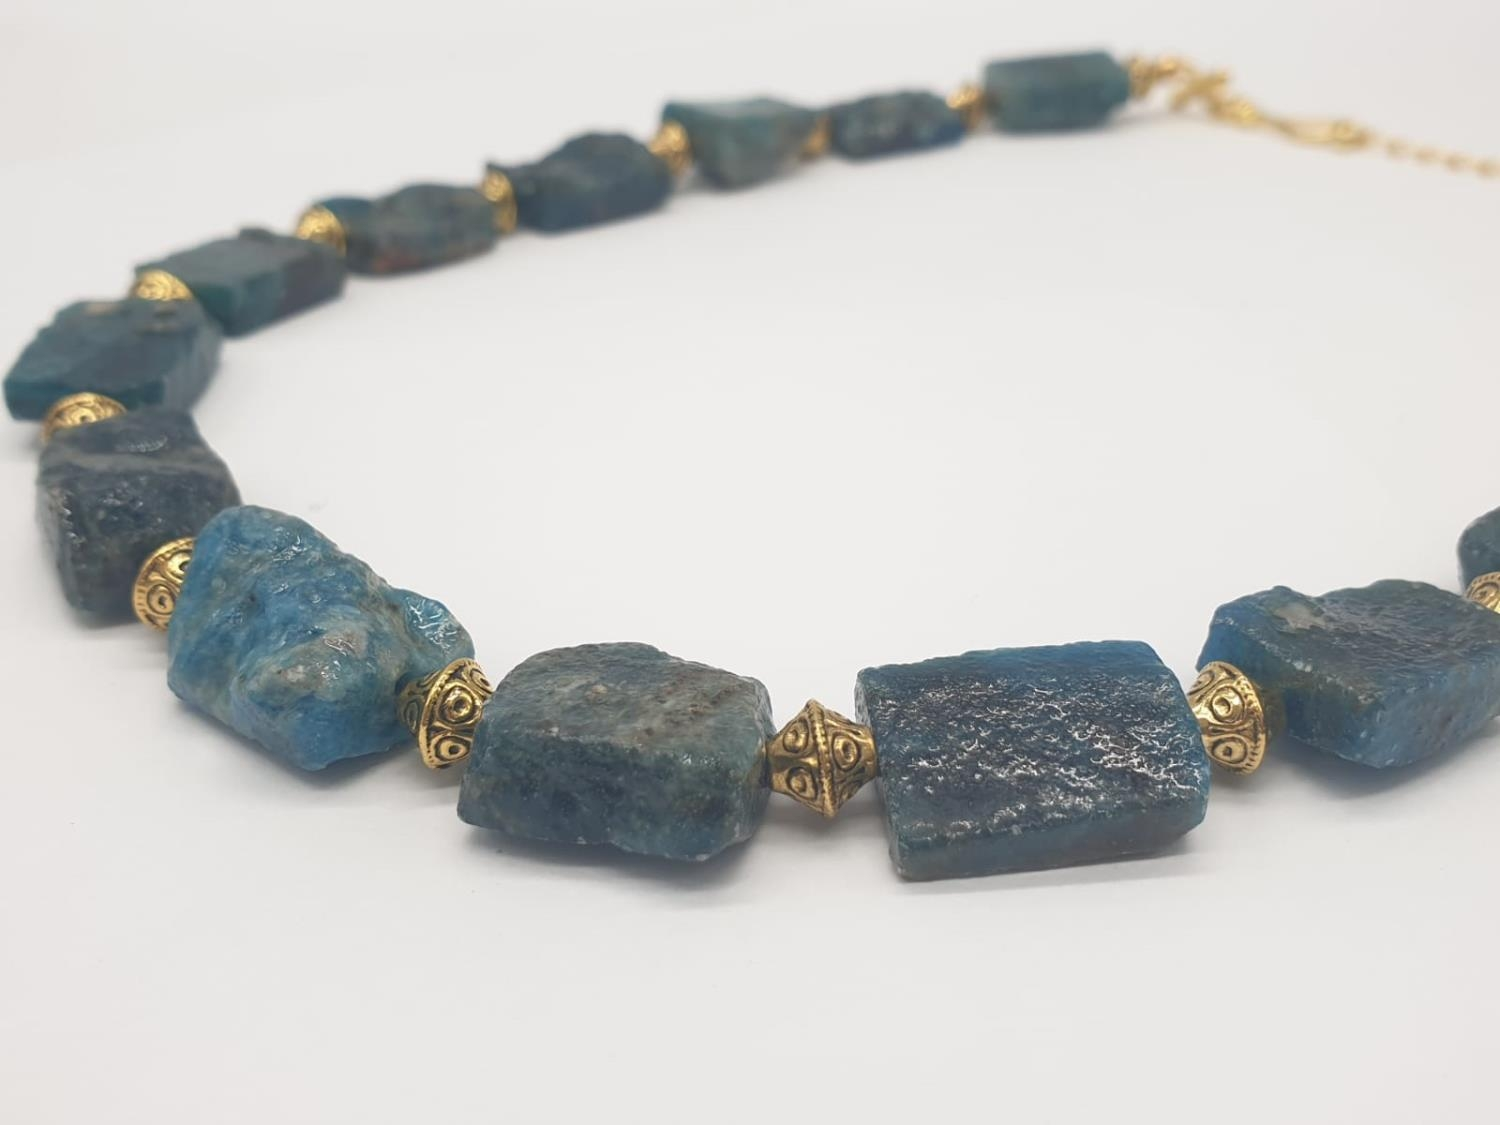 A necklace and earrings set made of Brazilian bluish apatite in its natural state. In a gift box, - Image 8 of 9